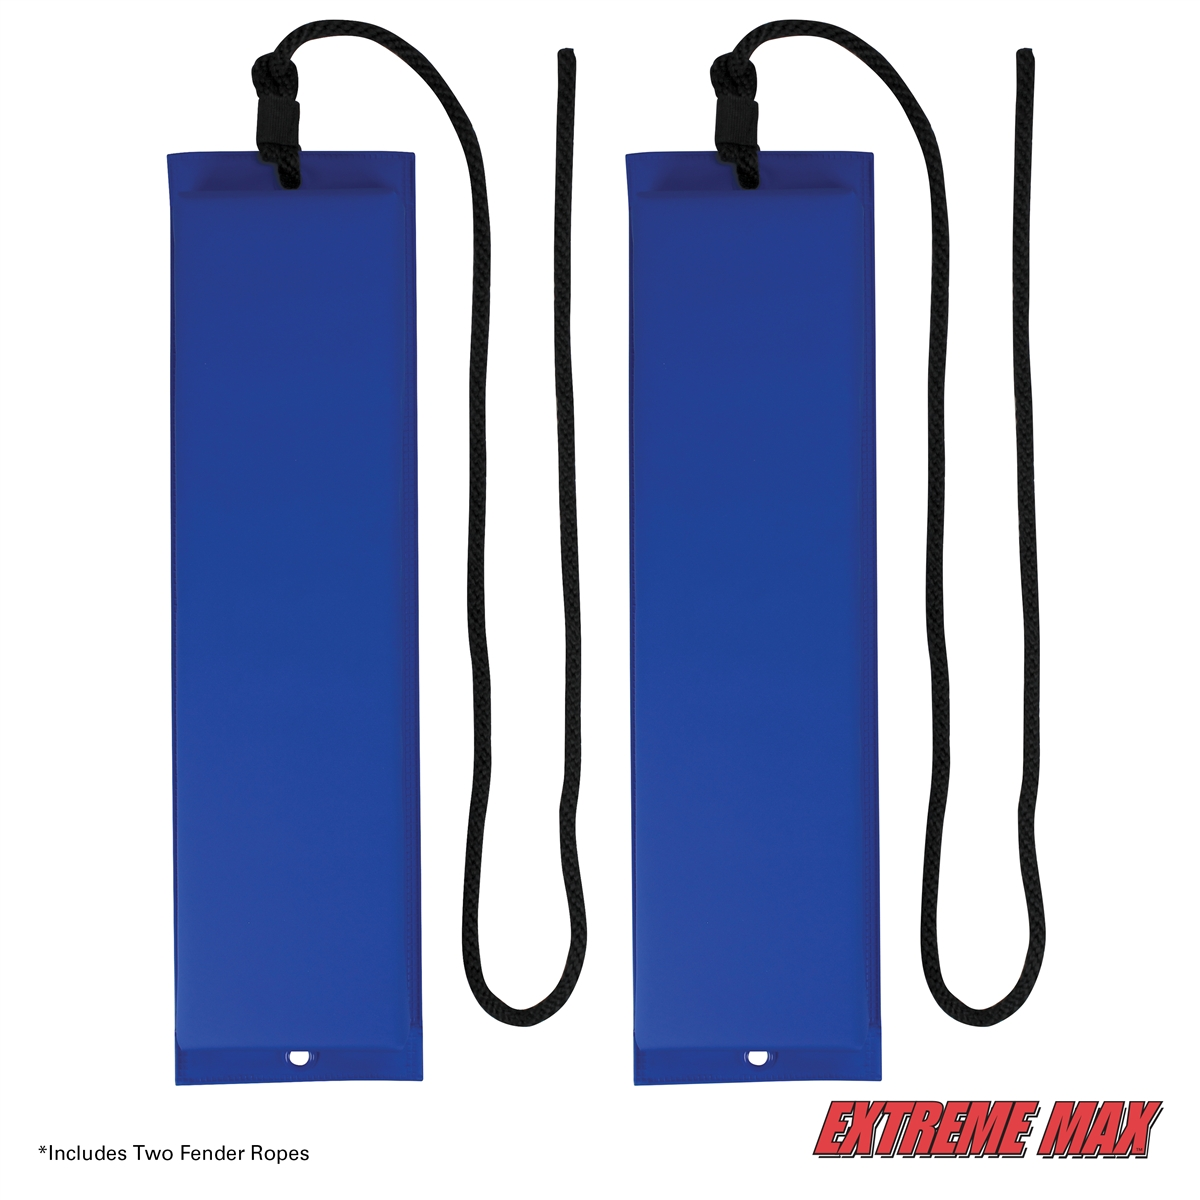 "Blue Extreme Max BoatTector 26/"" Flat Fender Value Pack"